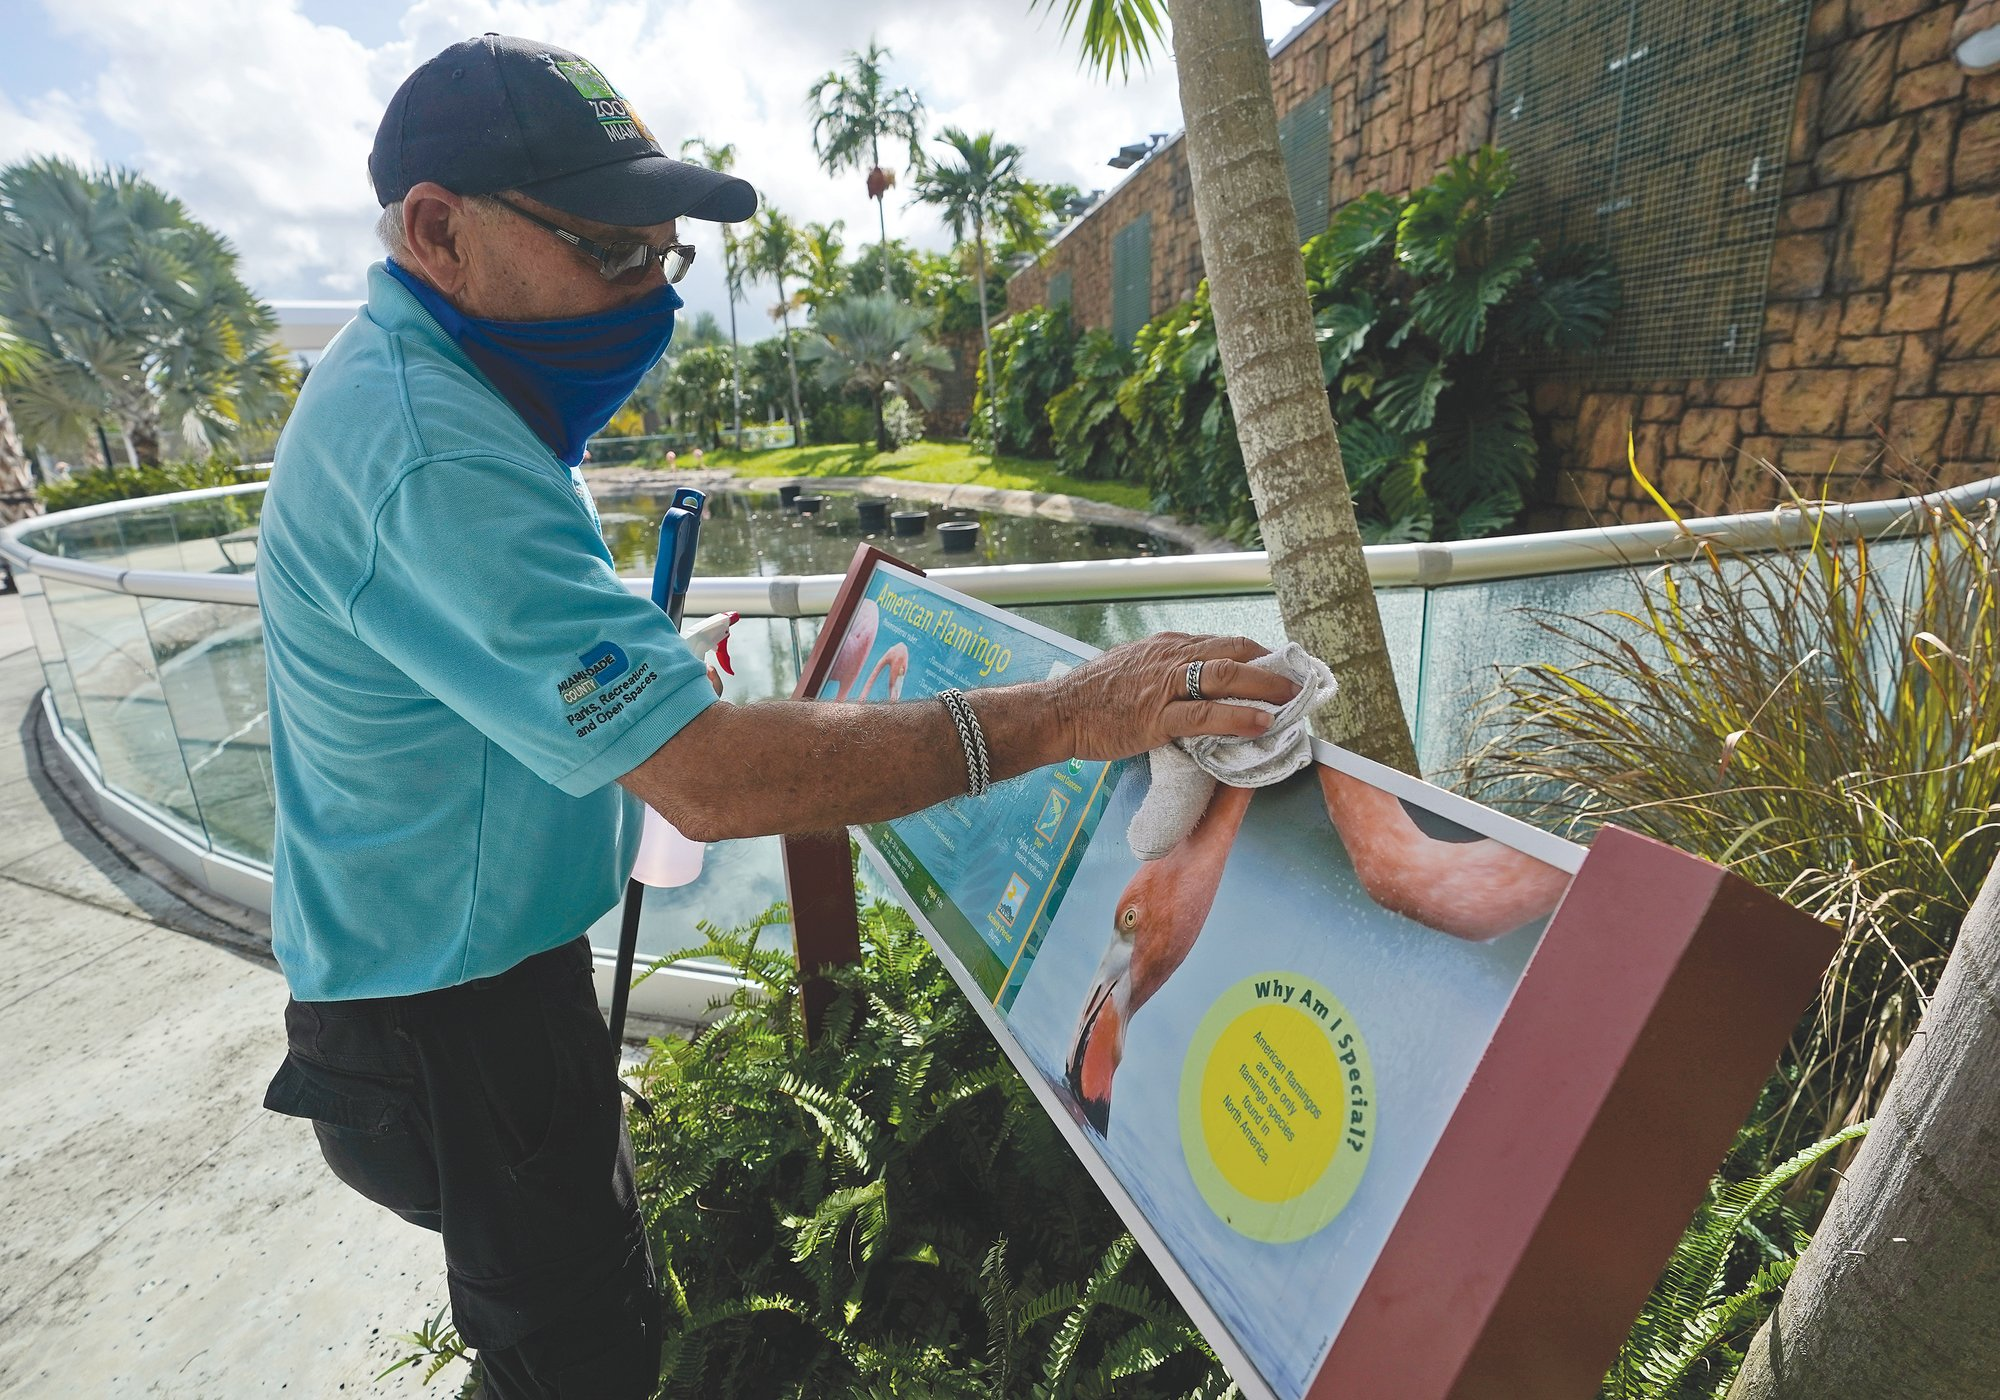 THE ASSOCIATED PRESS  Zoo Miami employee Gaspar Ventos sanitizes a sign at the American flamingo display area Tuesday at the zoo in Miami. The zoo reopened Tuesday as Miami-Dade and Broward counties moved to Phase 2 of reopening on Monday.